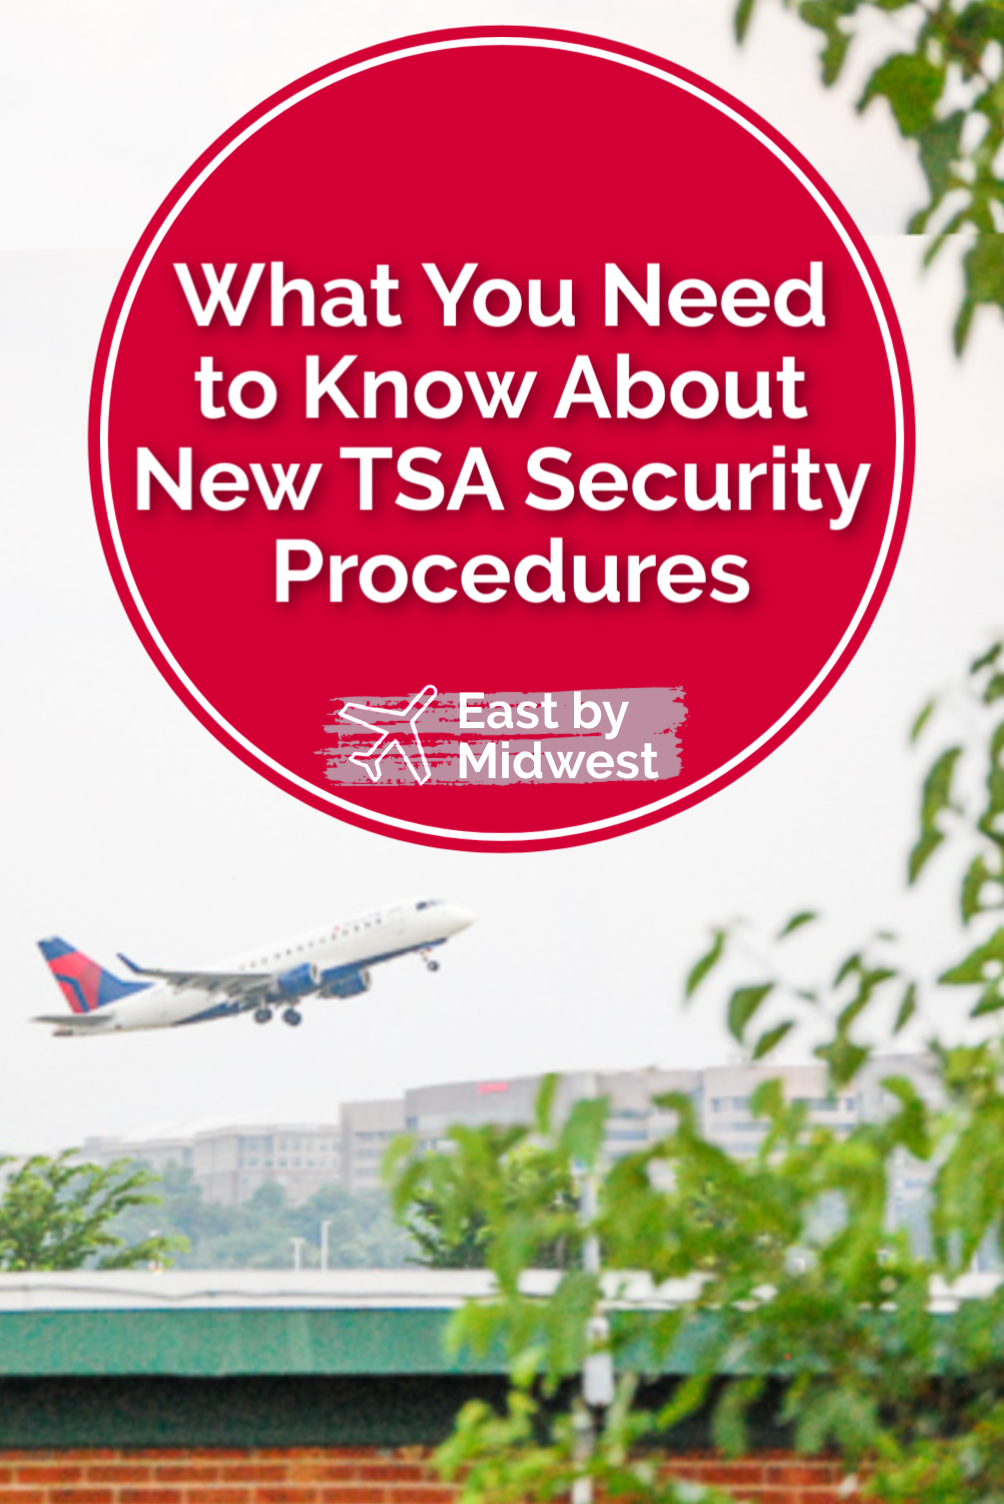 What You Need to Know About New TSA Security Procedures